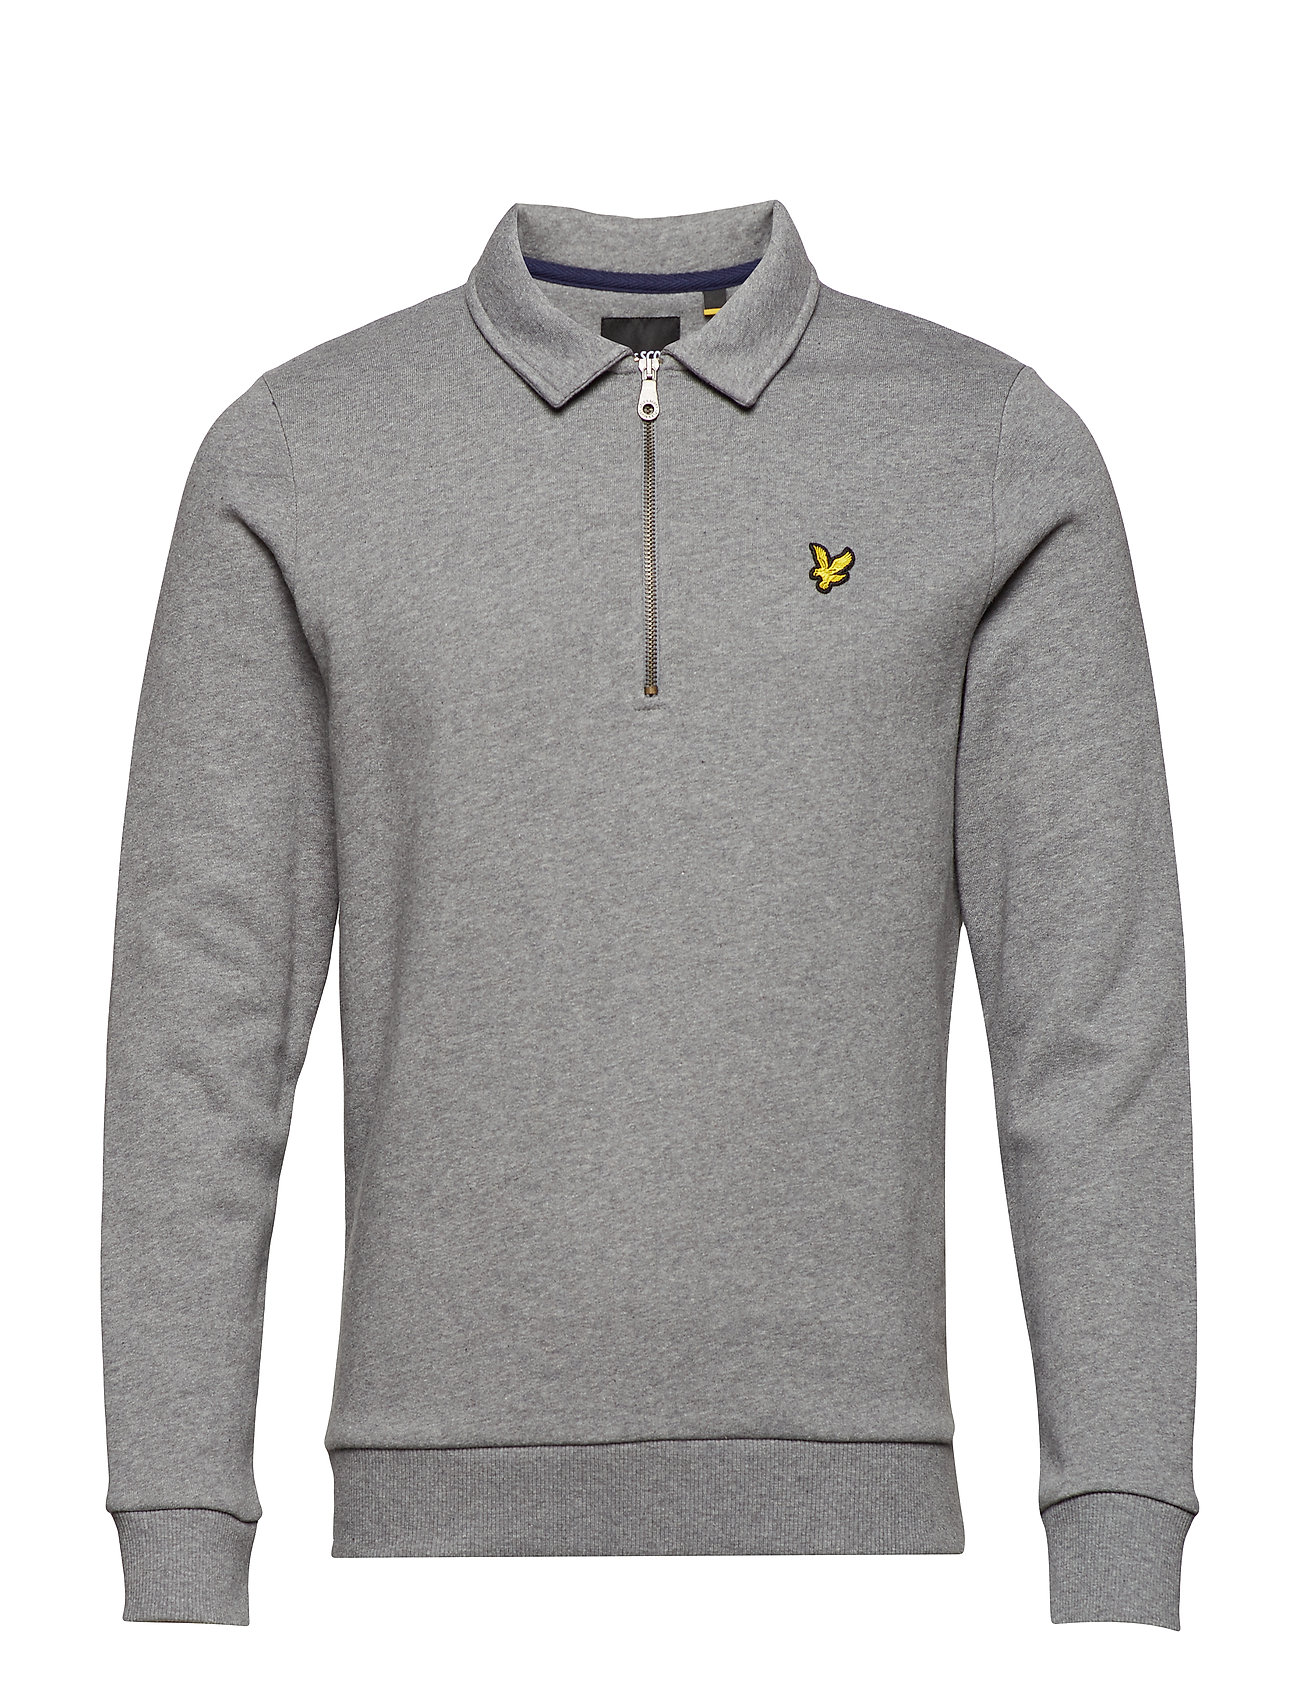 Image of Collared 1/4 Zip Sweatshirt Langærmet Trøje Grå LYLE & SCOTT (3091461289)